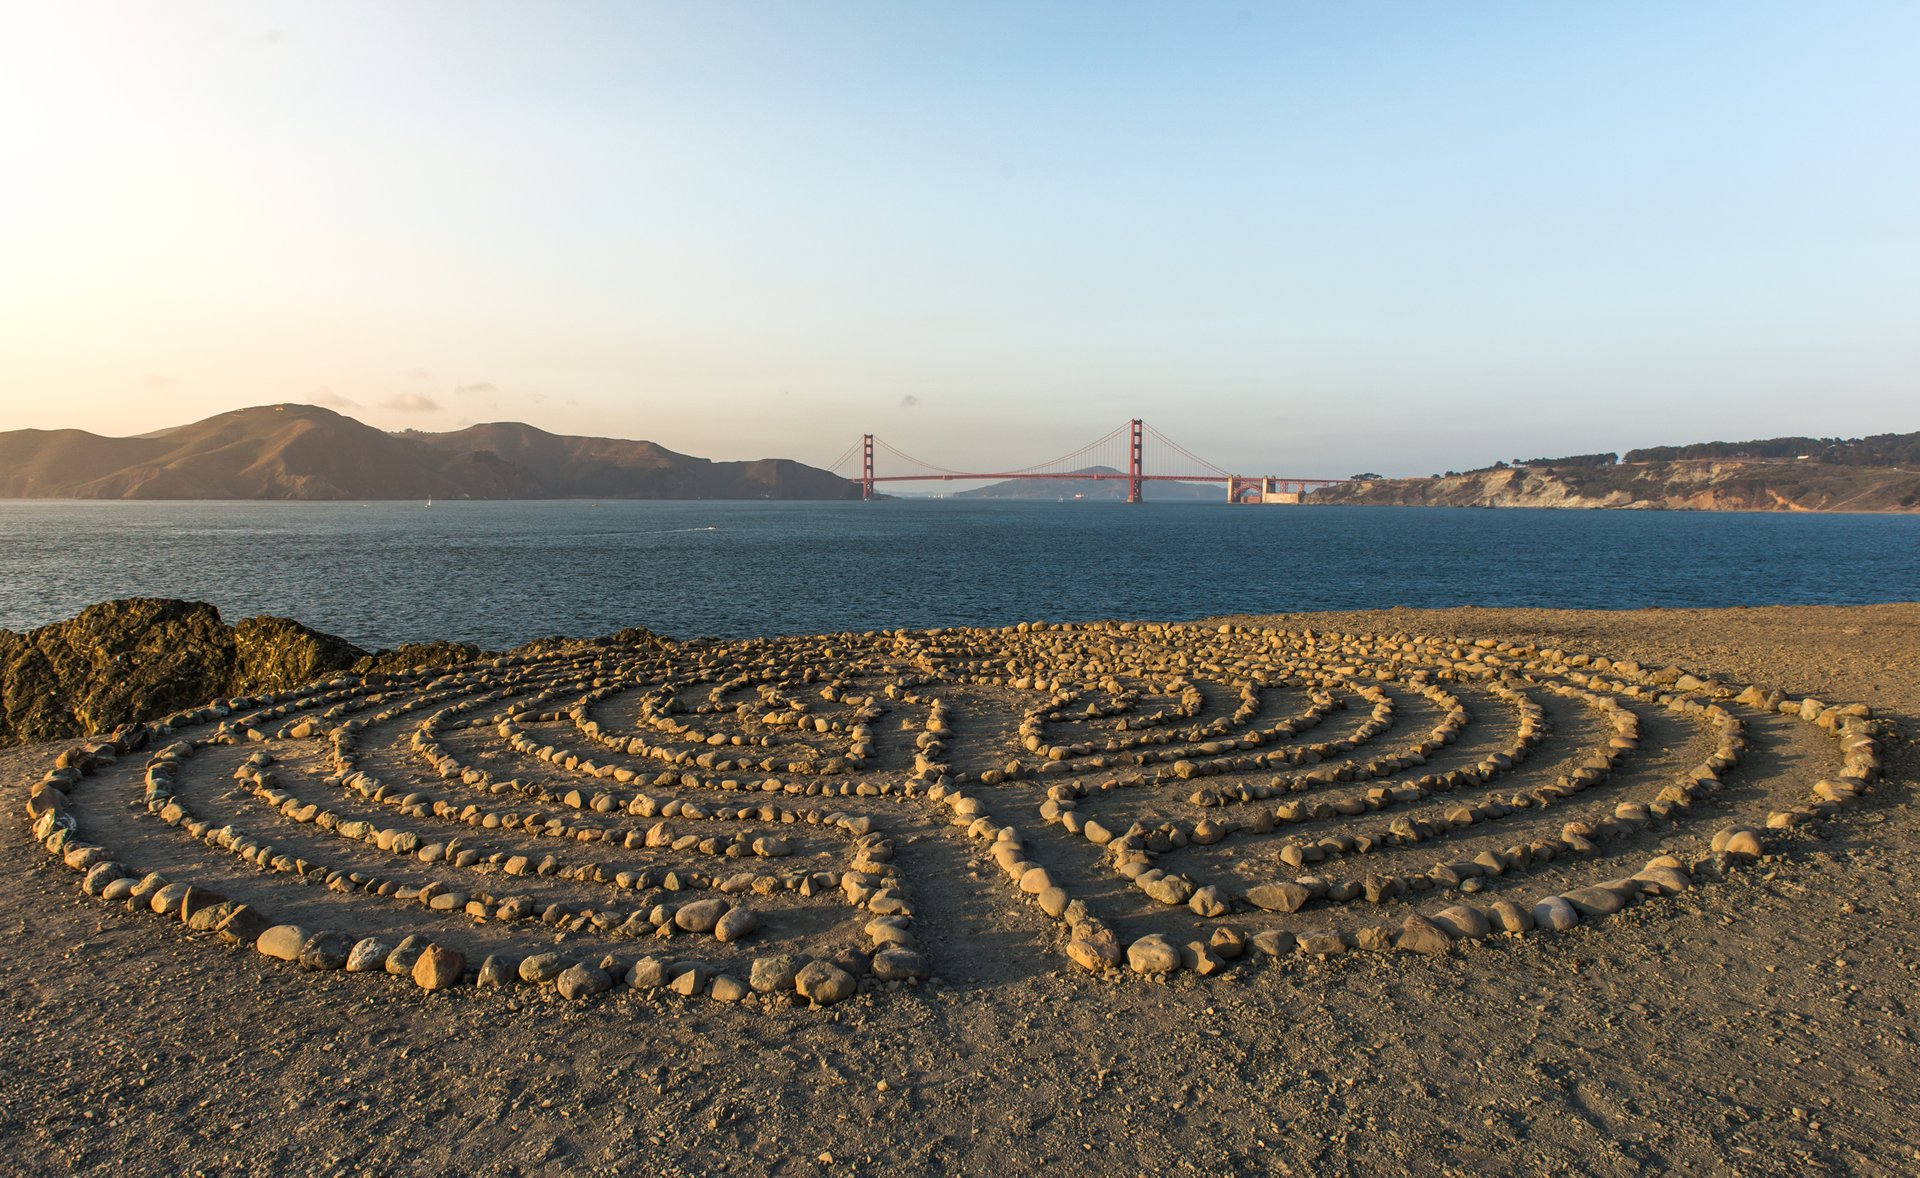 Land's End Labyrinth in San Francisco 2019 - Best Time